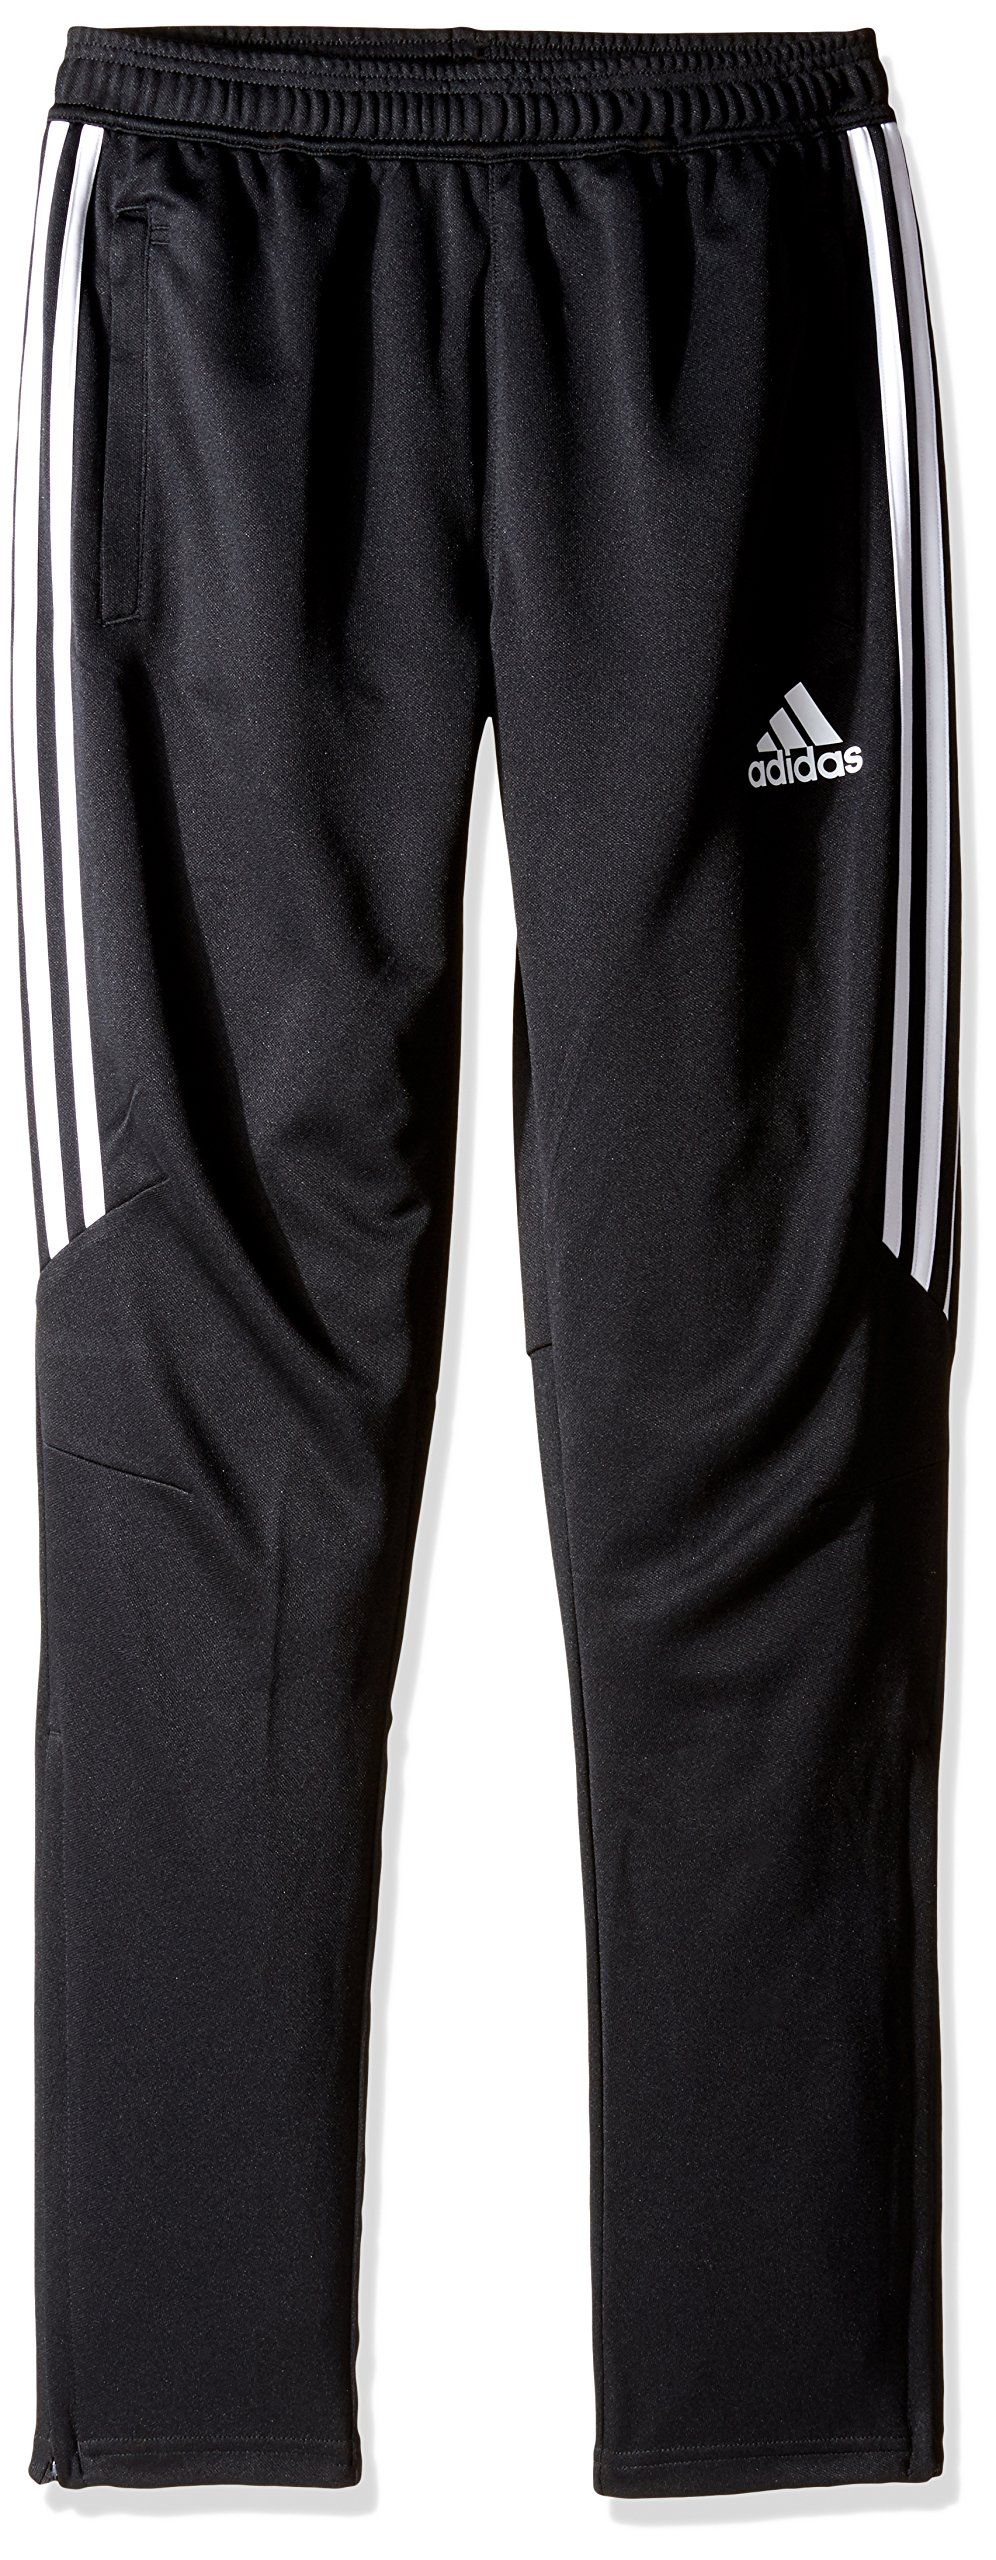 adidas Youth Soccer Tiro 17 Pants, XX-Small - Black/White/White